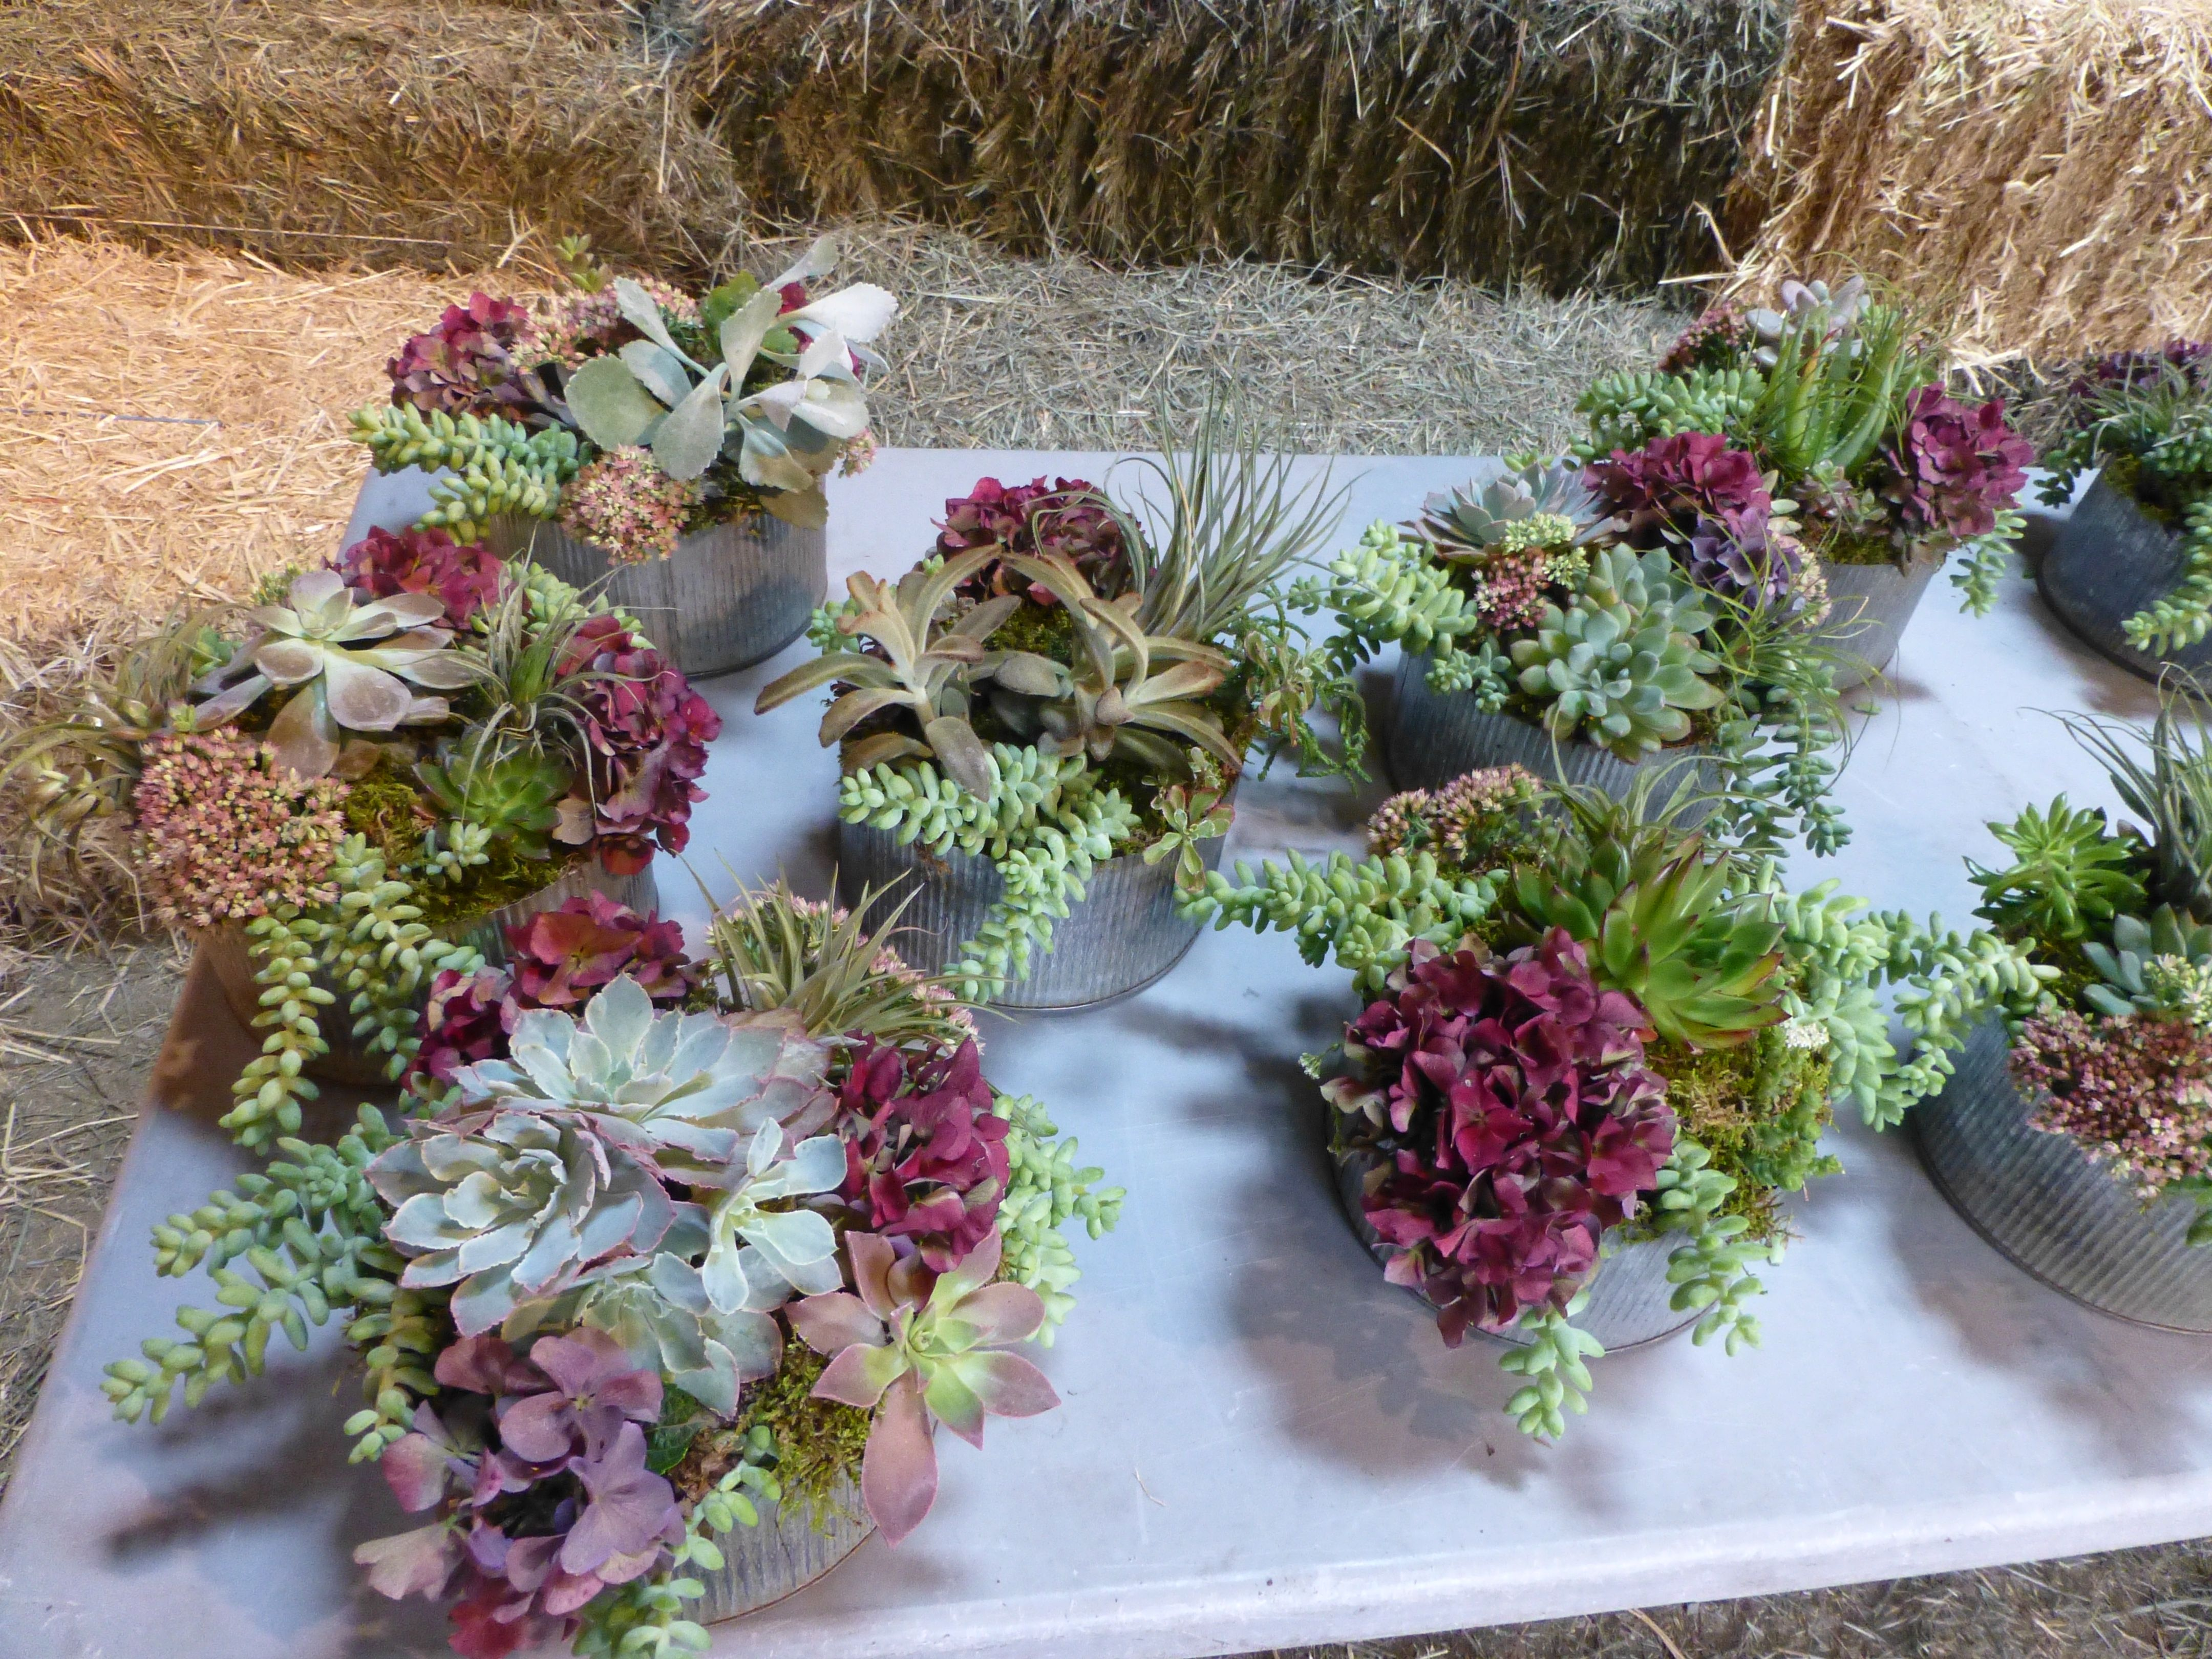 SUCCULENT & AIRPLANT WEDDING CENTERPIECES, late September